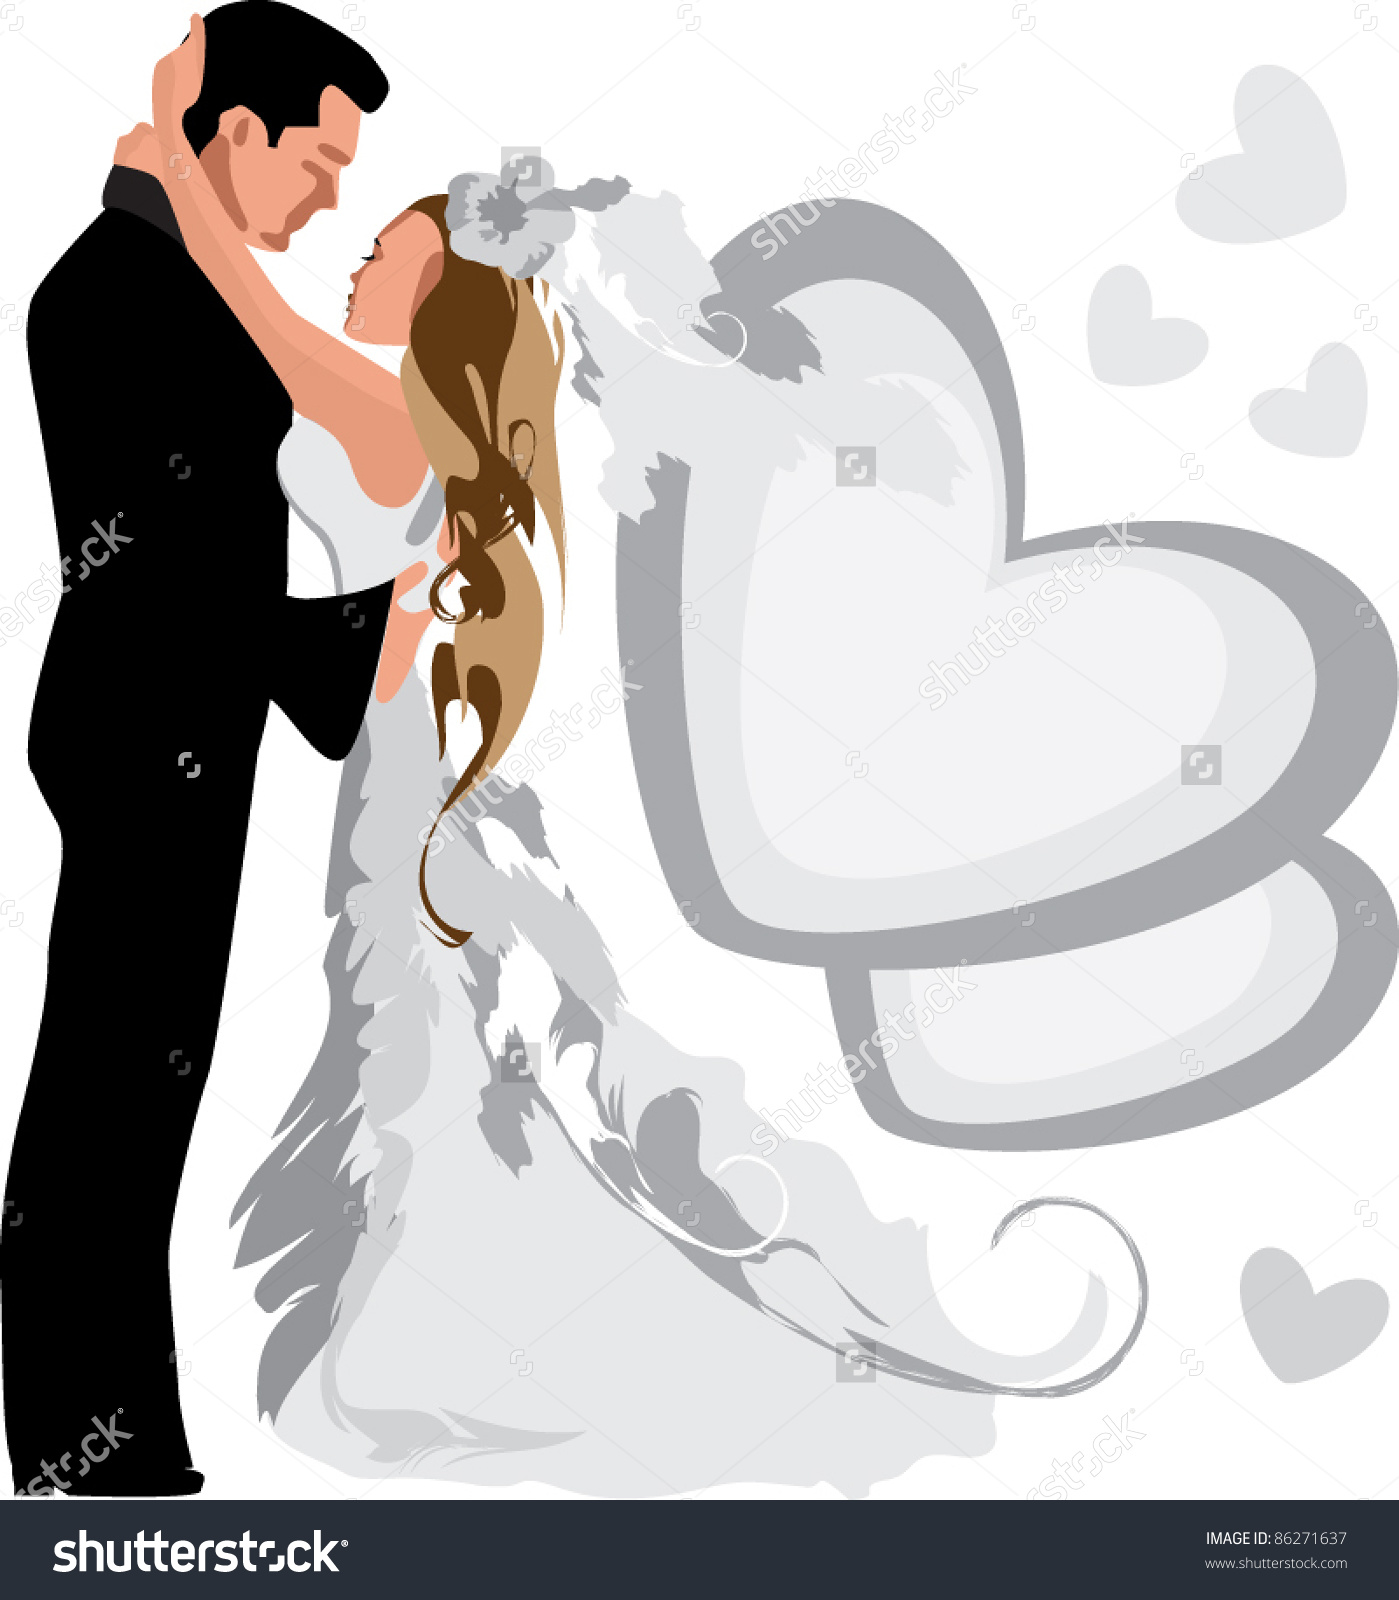 Clipart of two people wedding clip art black and white stock Love Man Woman Two Wedding Marriage Stock Vector 86271637 ... clip art black and white stock